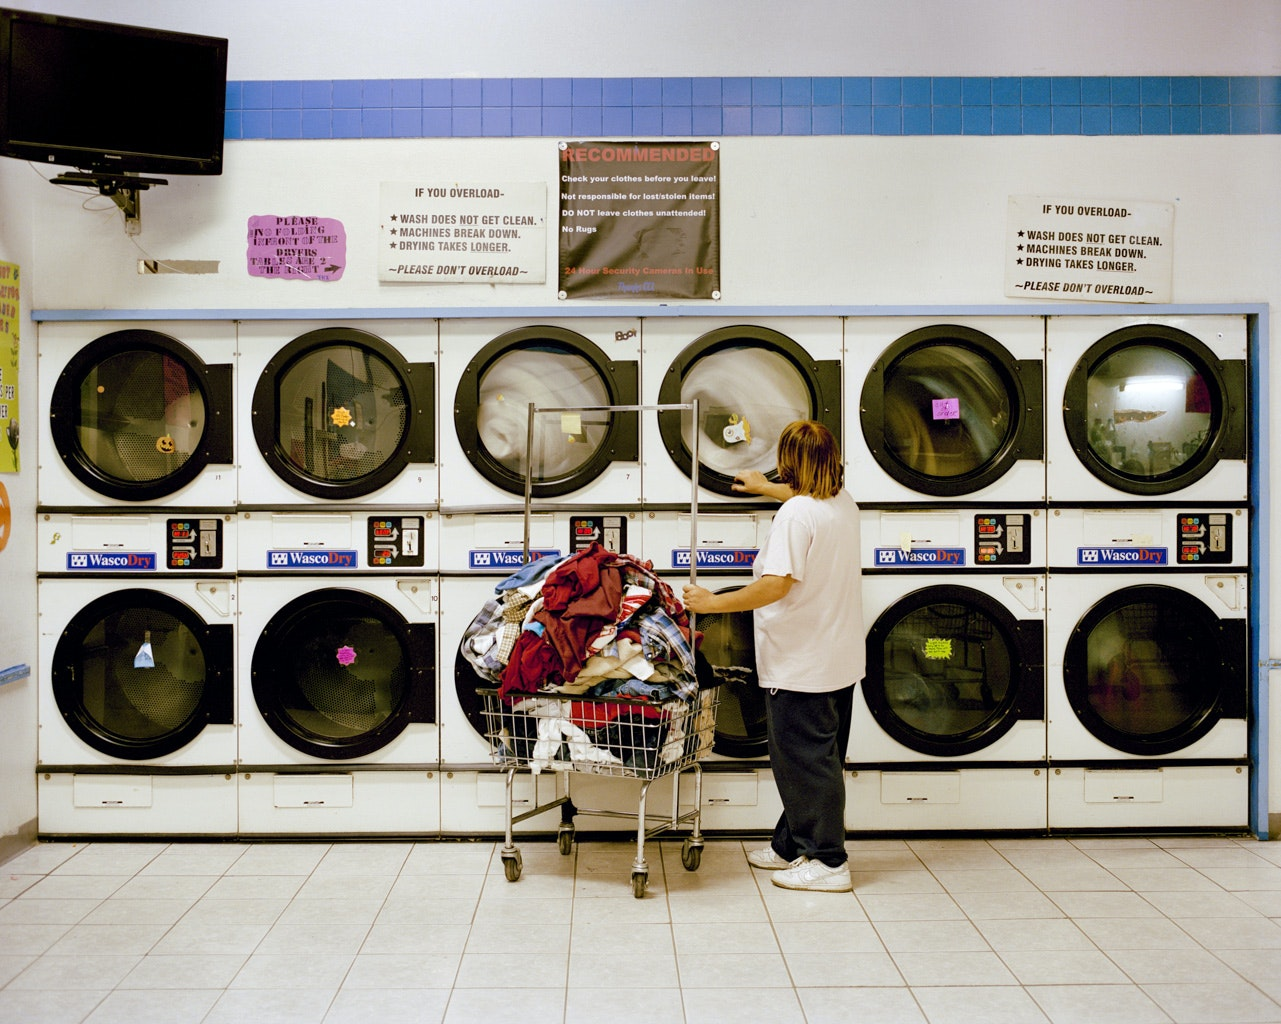 Carlsbad, New Mexico, is known as the gateway to Carlsbad Caverns National Park. Here, a Carlsbad resident washes clothing at Clean Corner Laundry in the city.